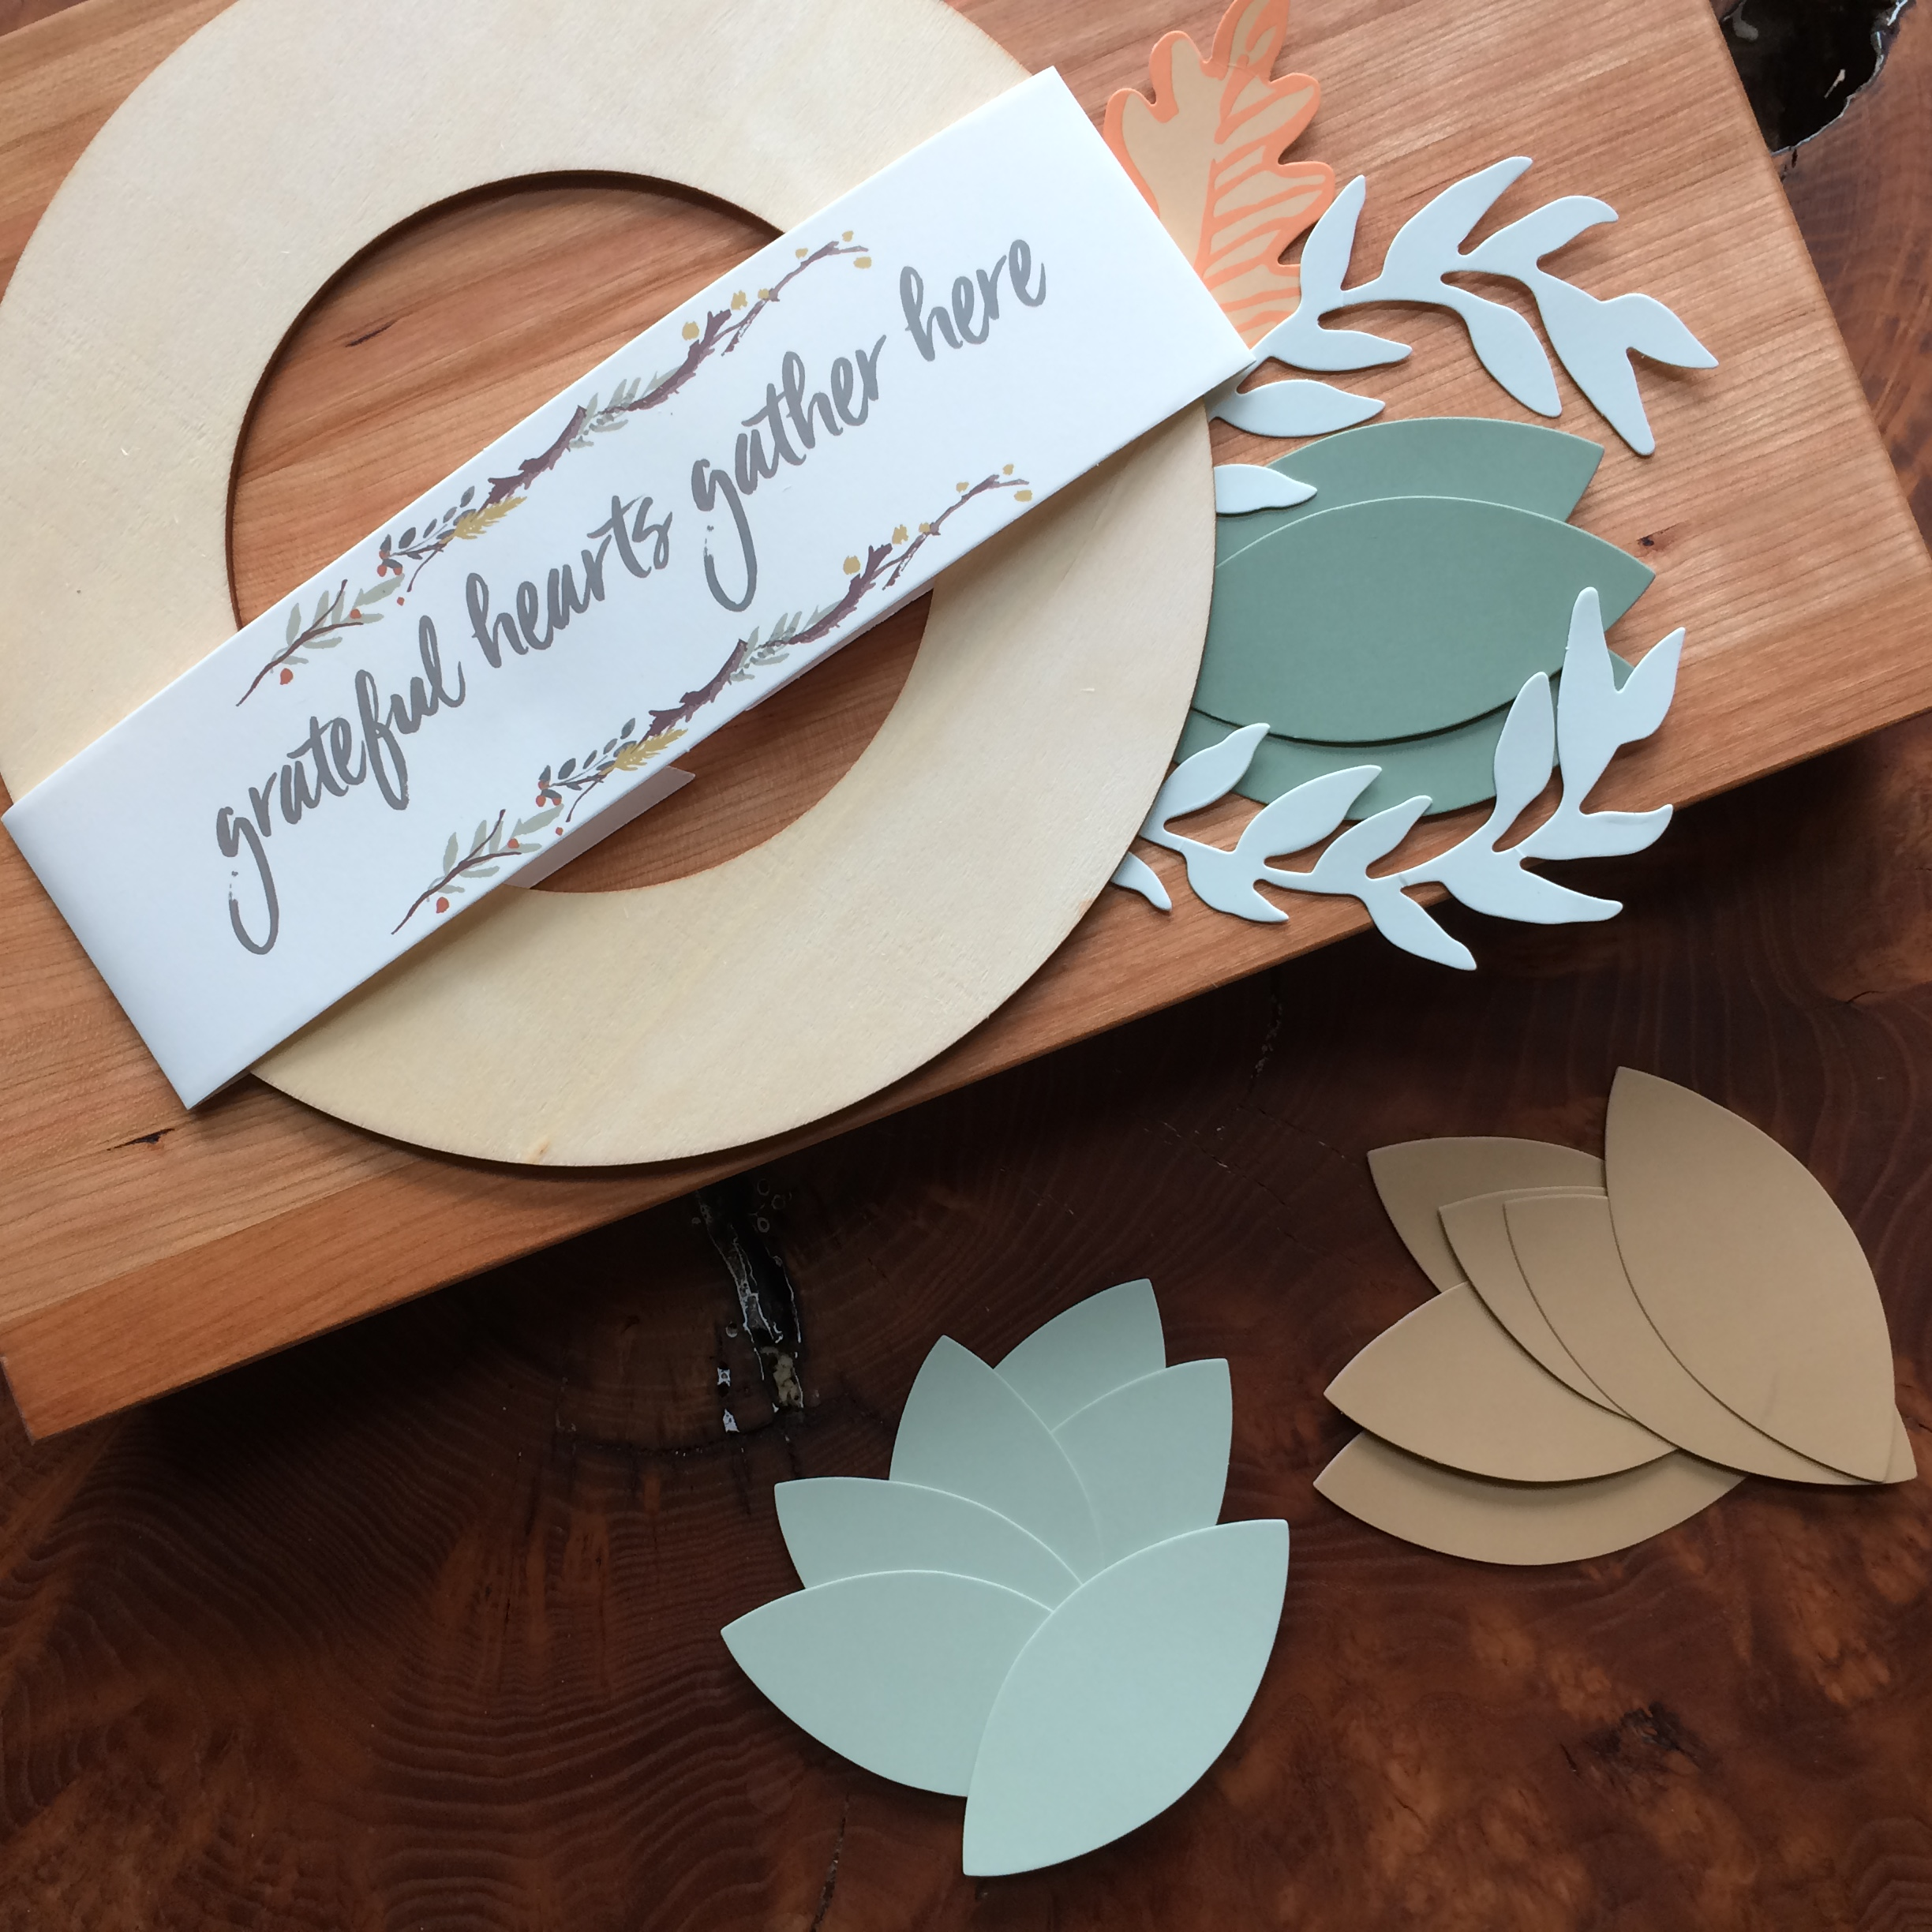 The 'giving thanks wreath'to be assembled with our guests on Thanksgiving day!